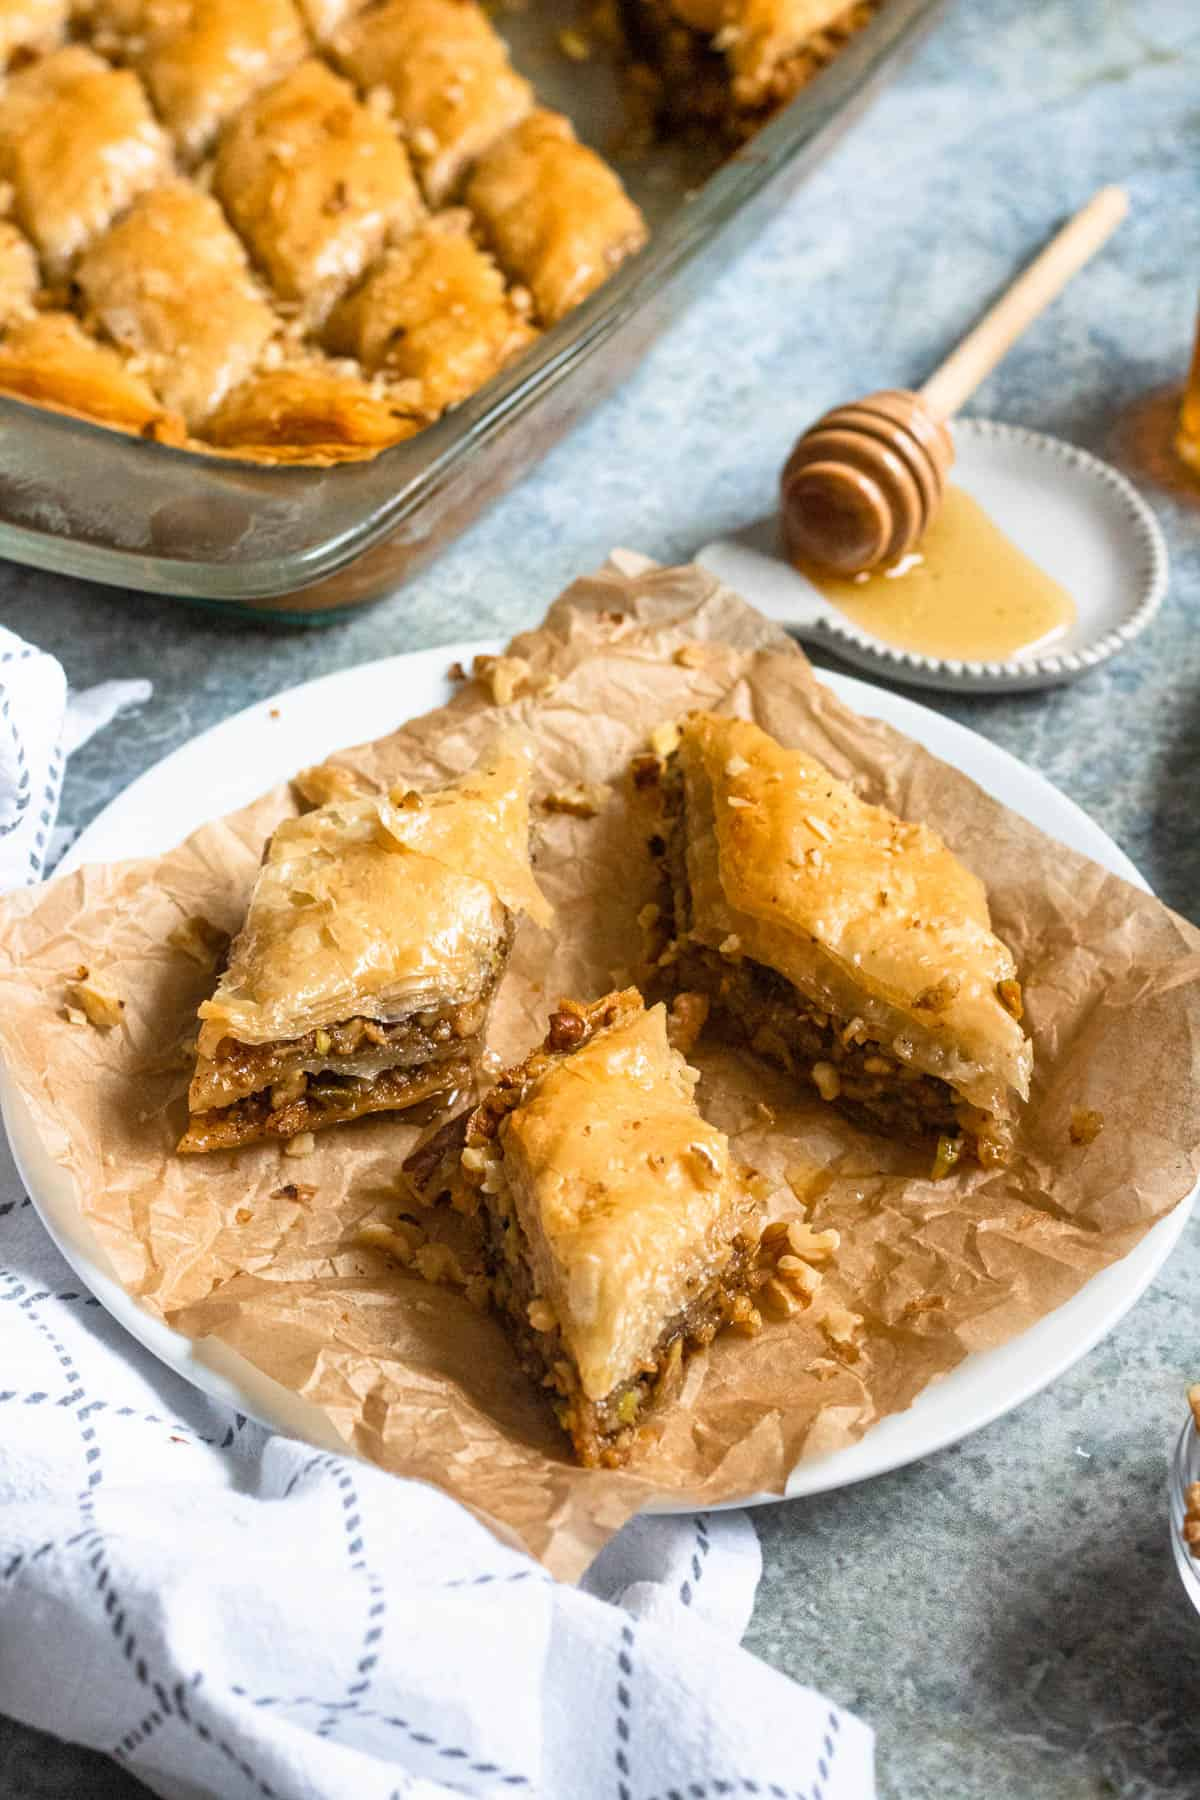 3 pieces of pistachio baklava with a tray of baklava behind it and a honey drip